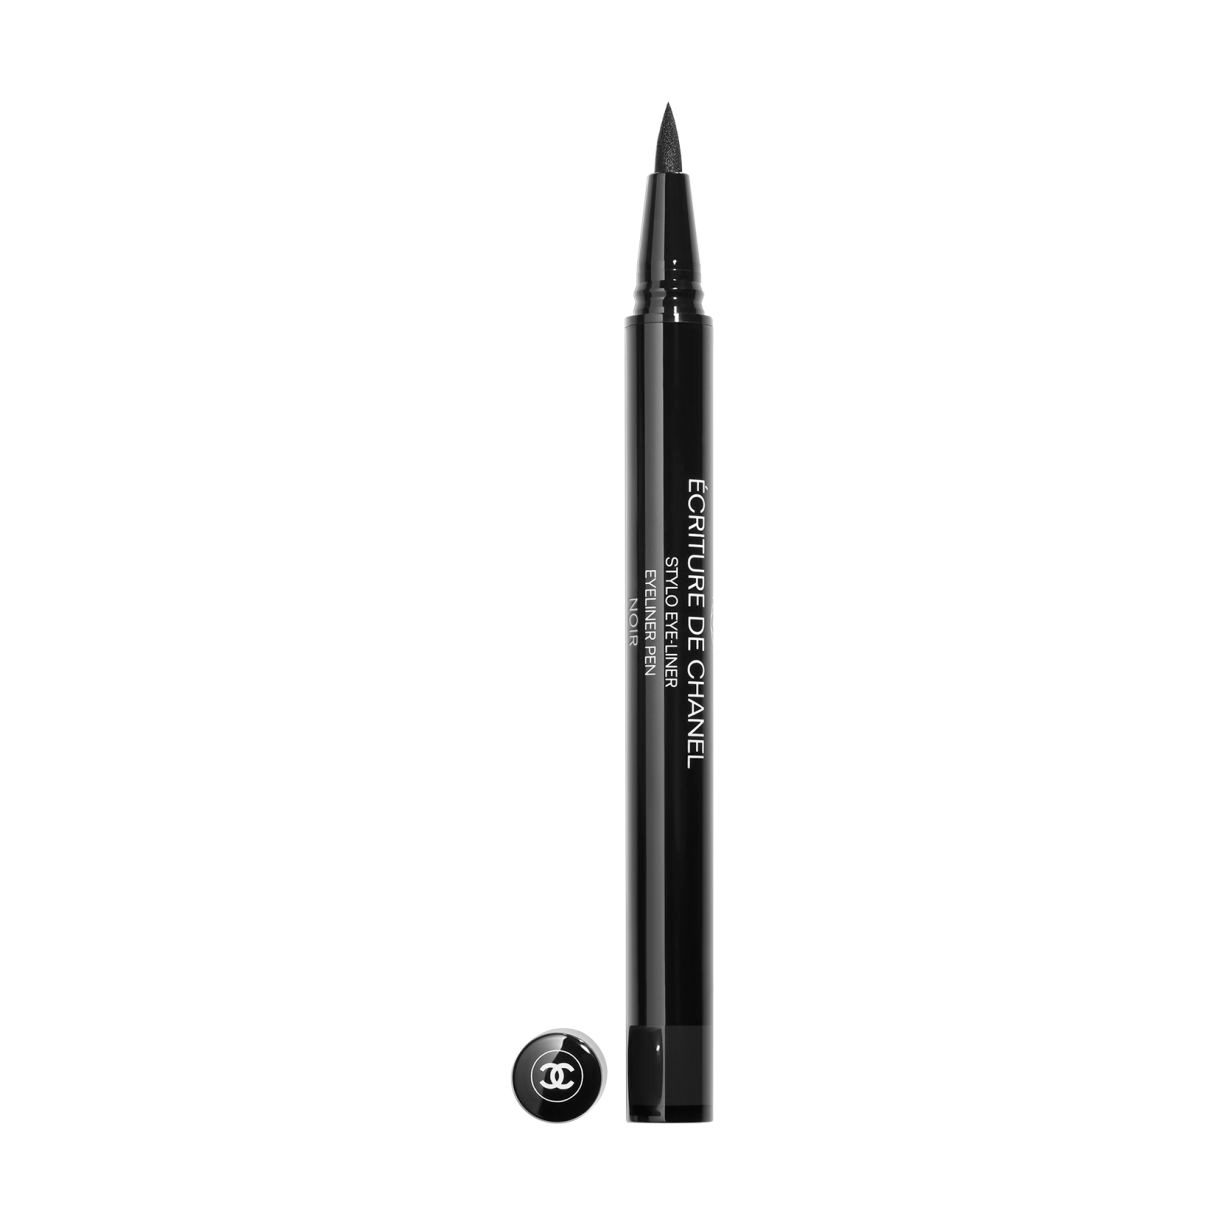 ÉCRITURE DE CHANEL EYELINER PEN EFFORTLESS DEFINITION